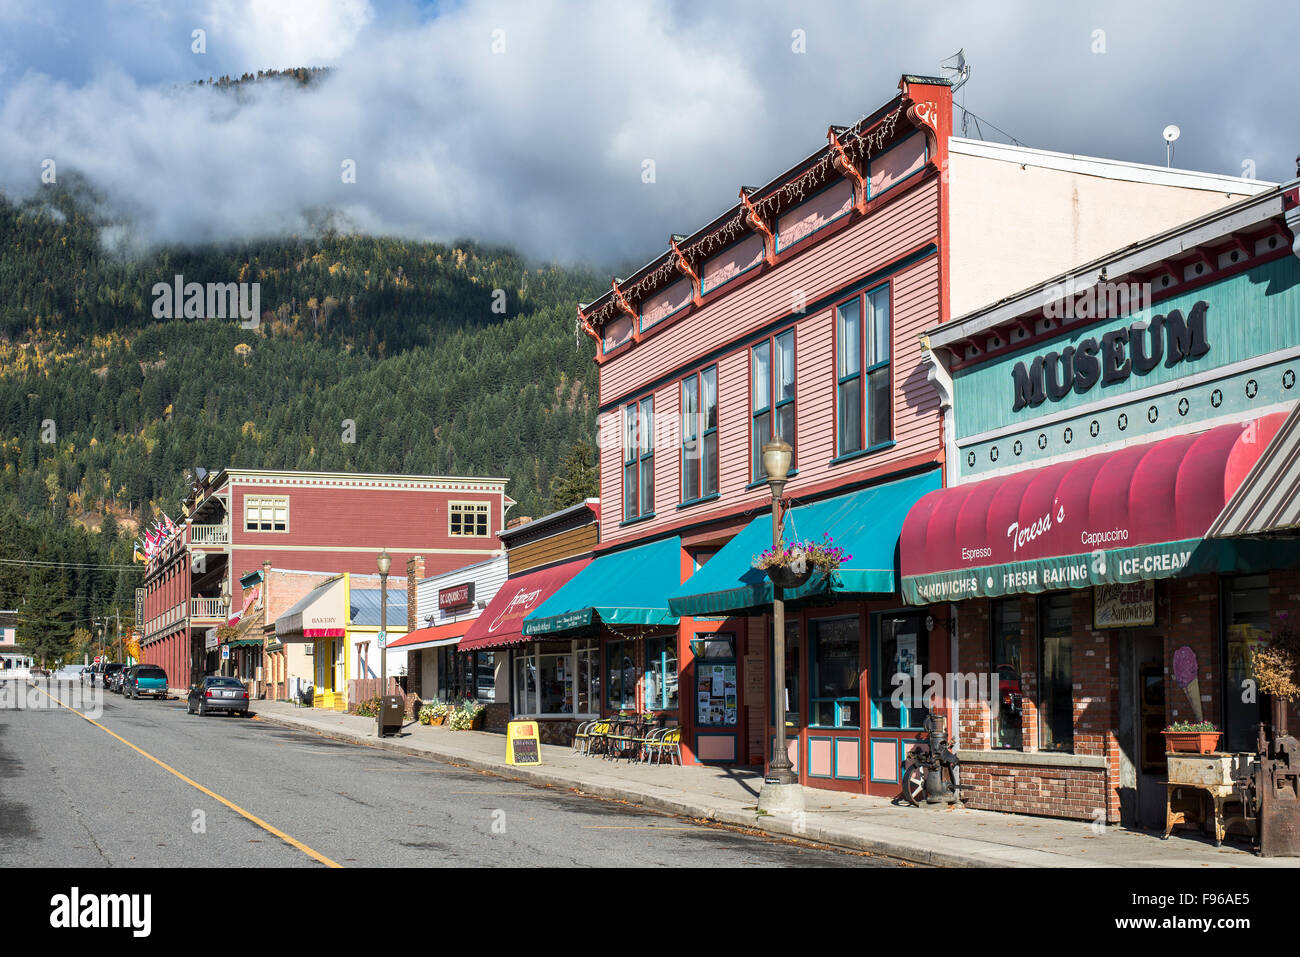 Heritage buildings in the old town of Kaslo in British Columbia, Canada. - Stock Image